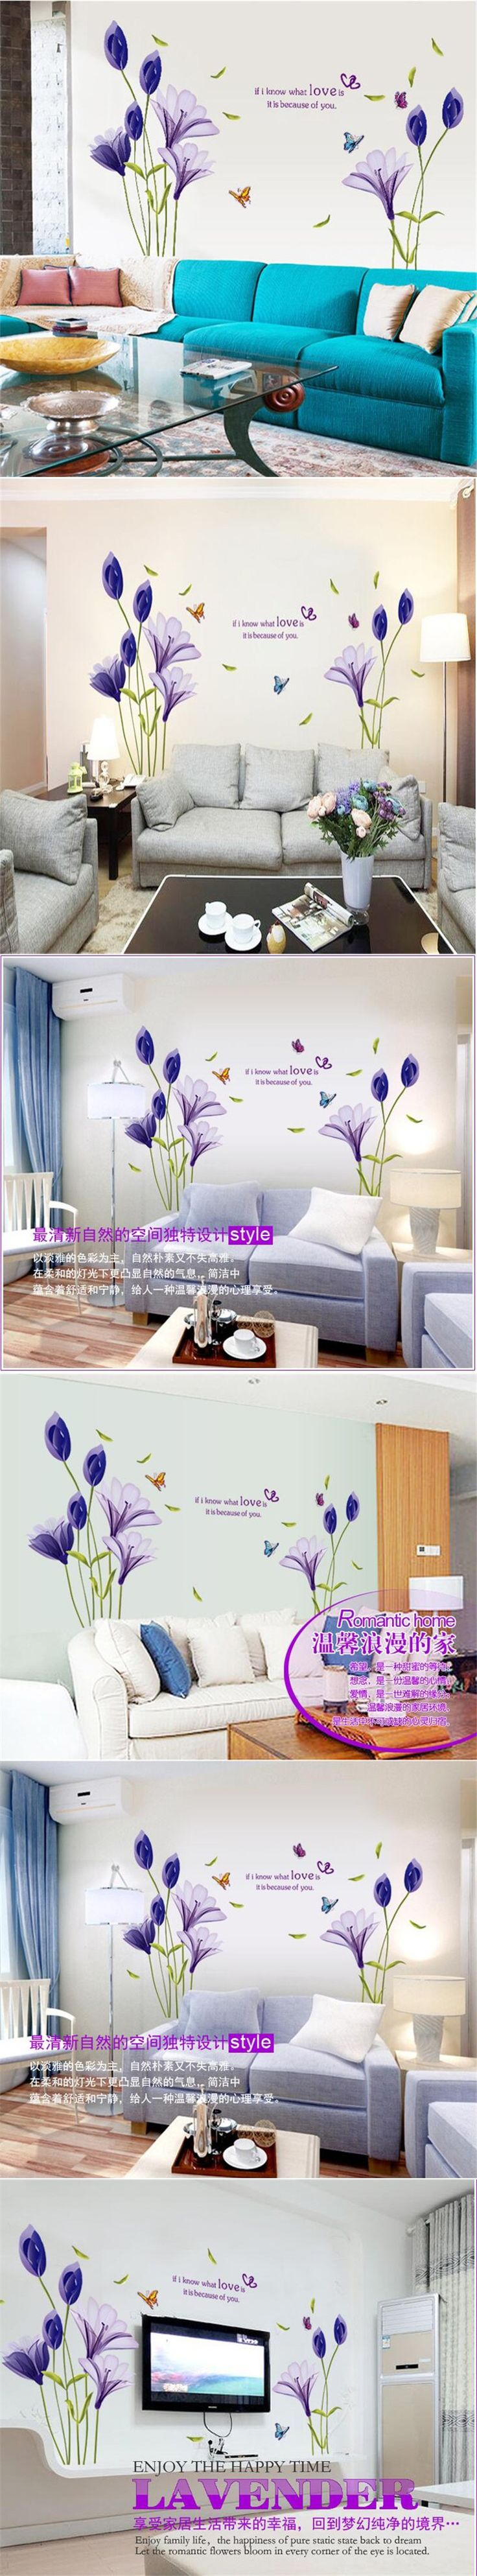 top 25 best flower wall stickers ideas on pinterest flower wall c234 warm romantic purple tulip flower wall stickers diy living room tv sofa background home decor mural decal